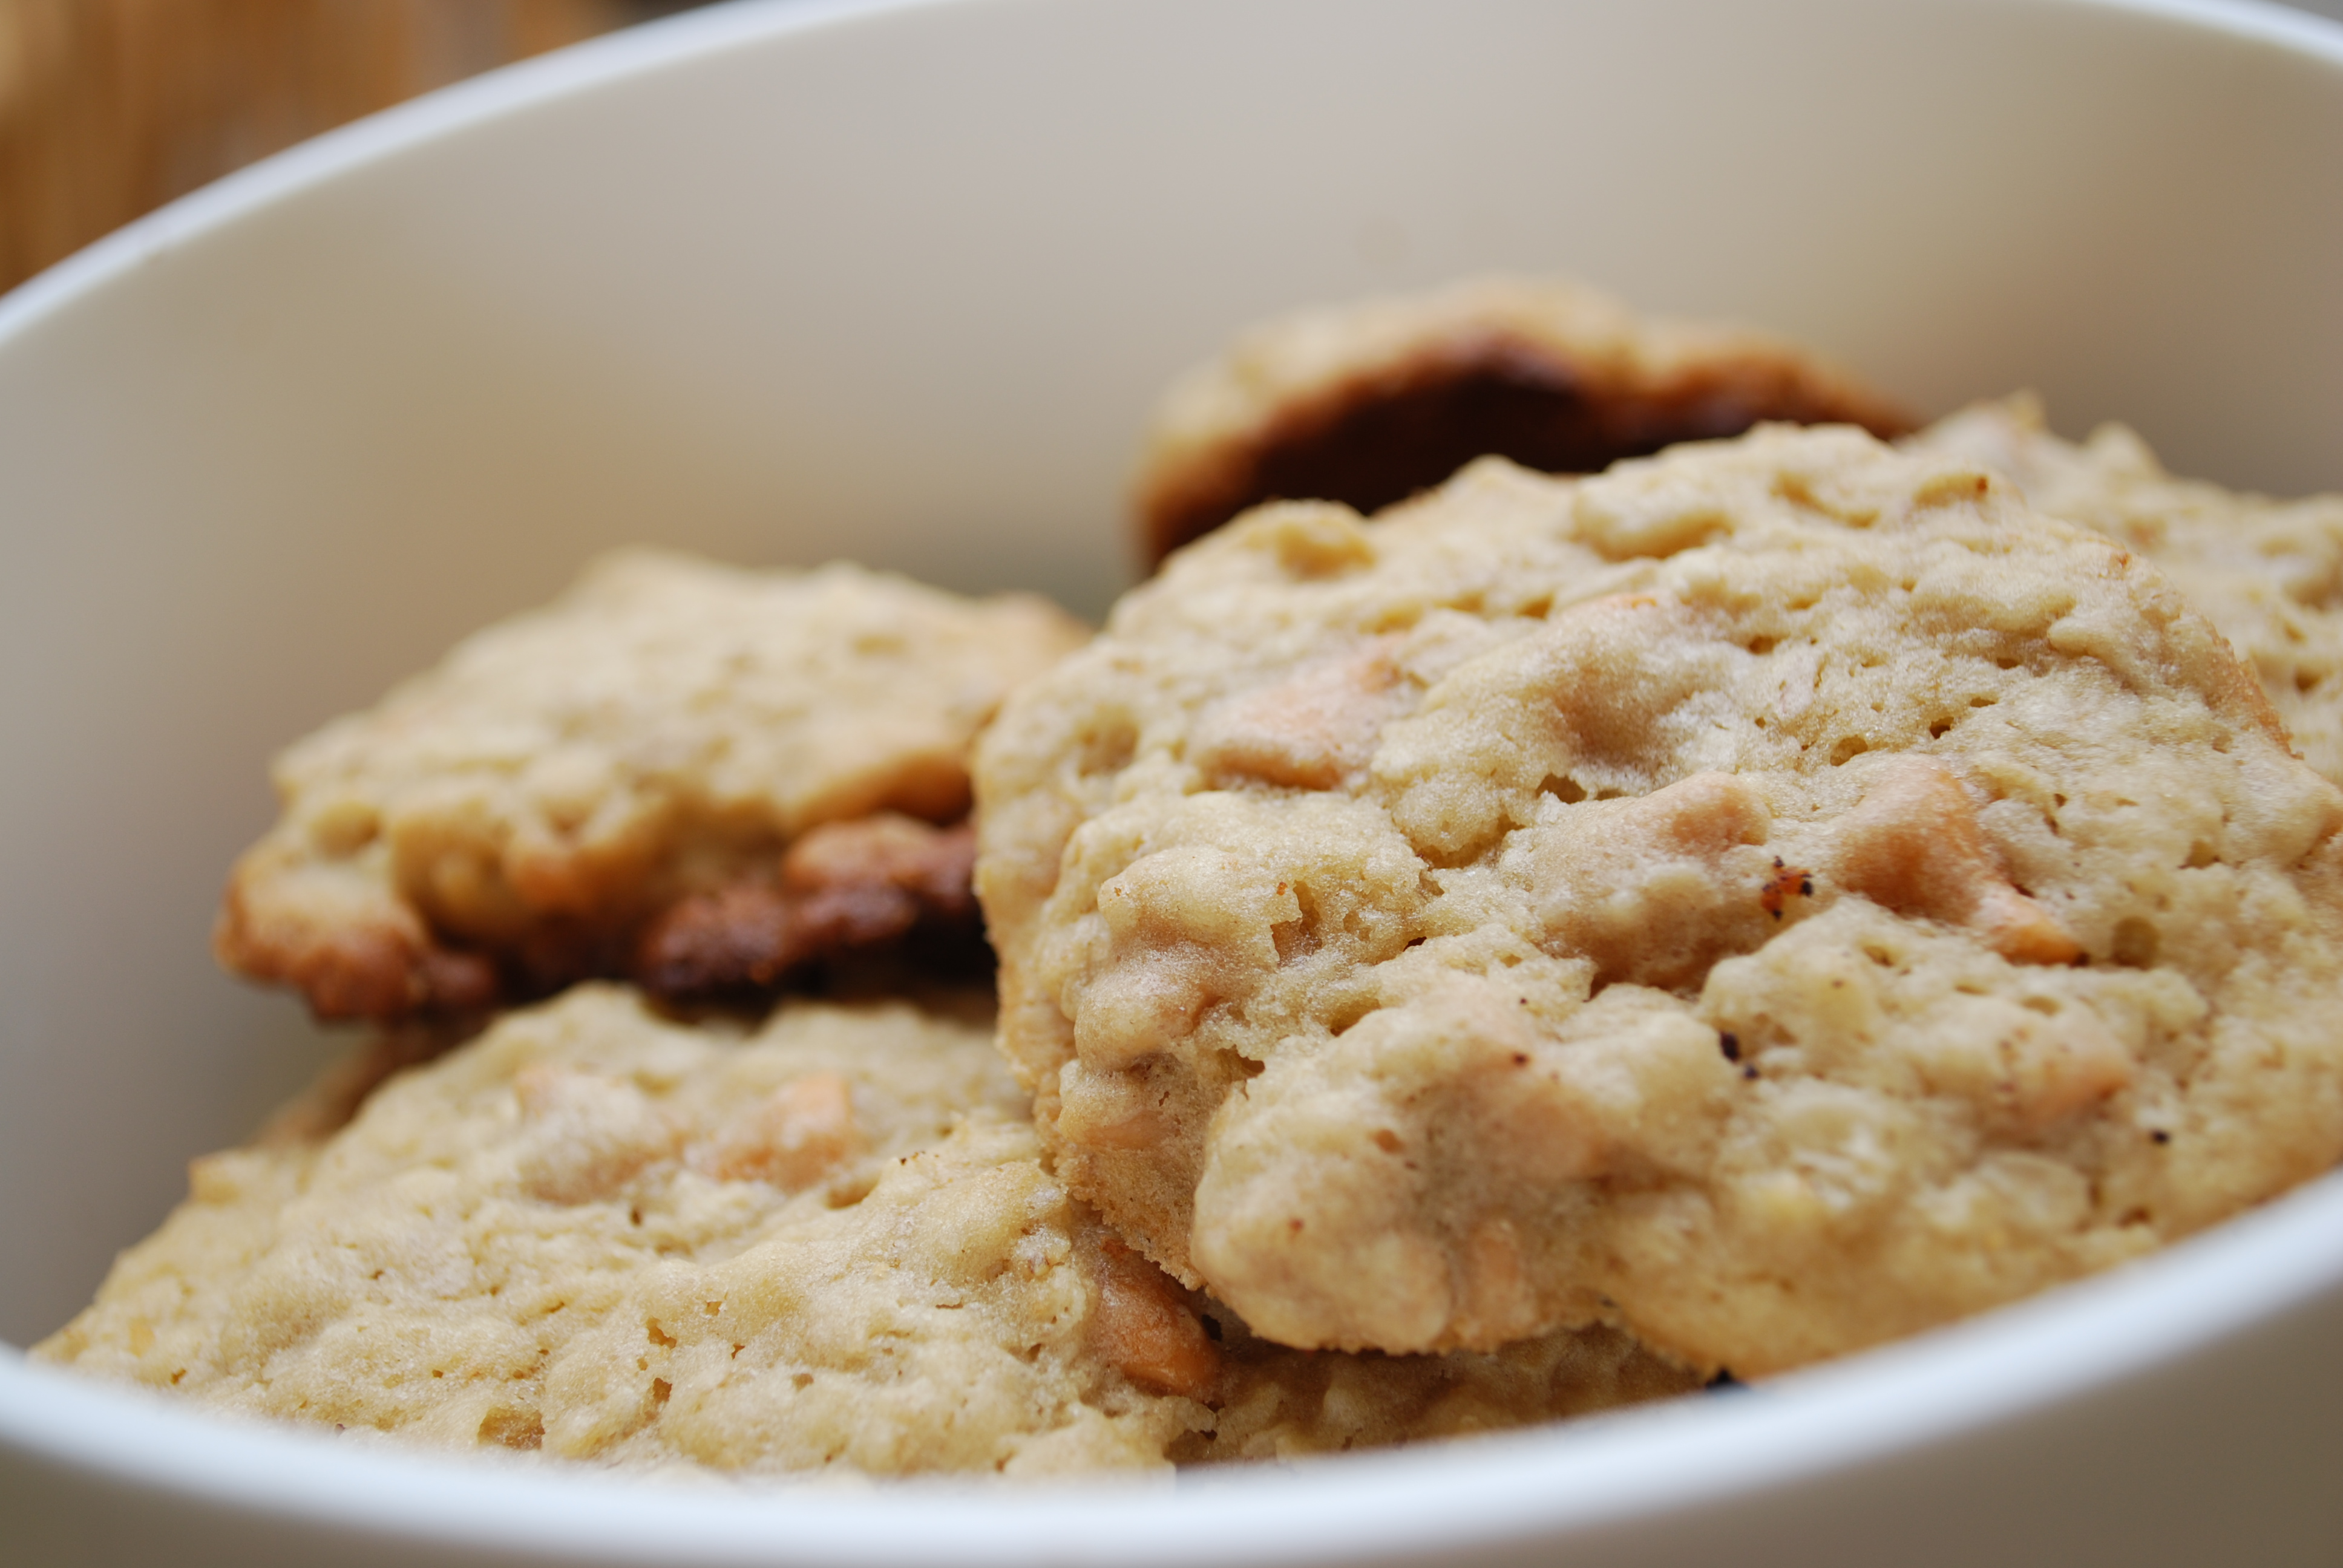 Fertility Food Fridays - Banana Blender Cookies